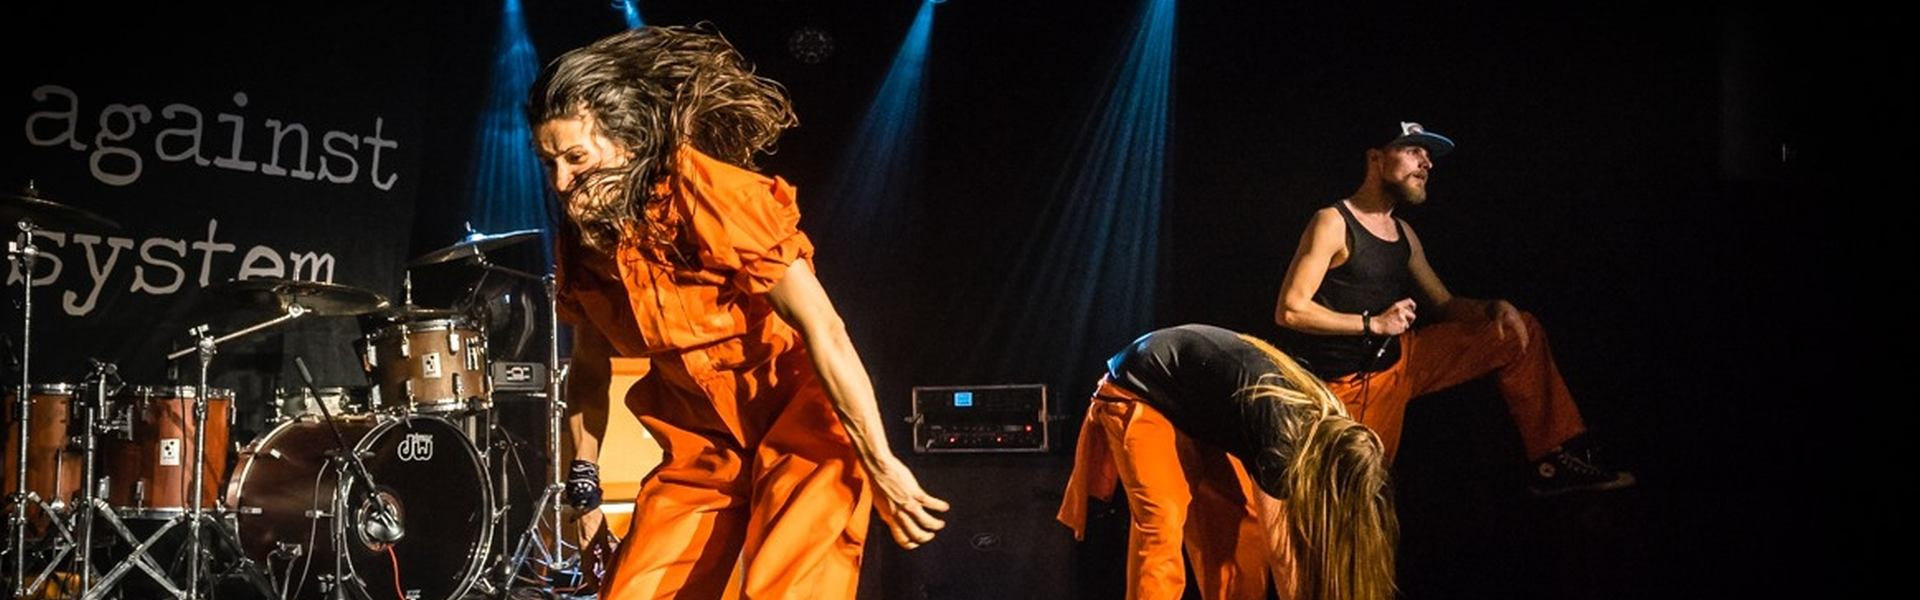 Rage Against The System is een RATM tributeband.